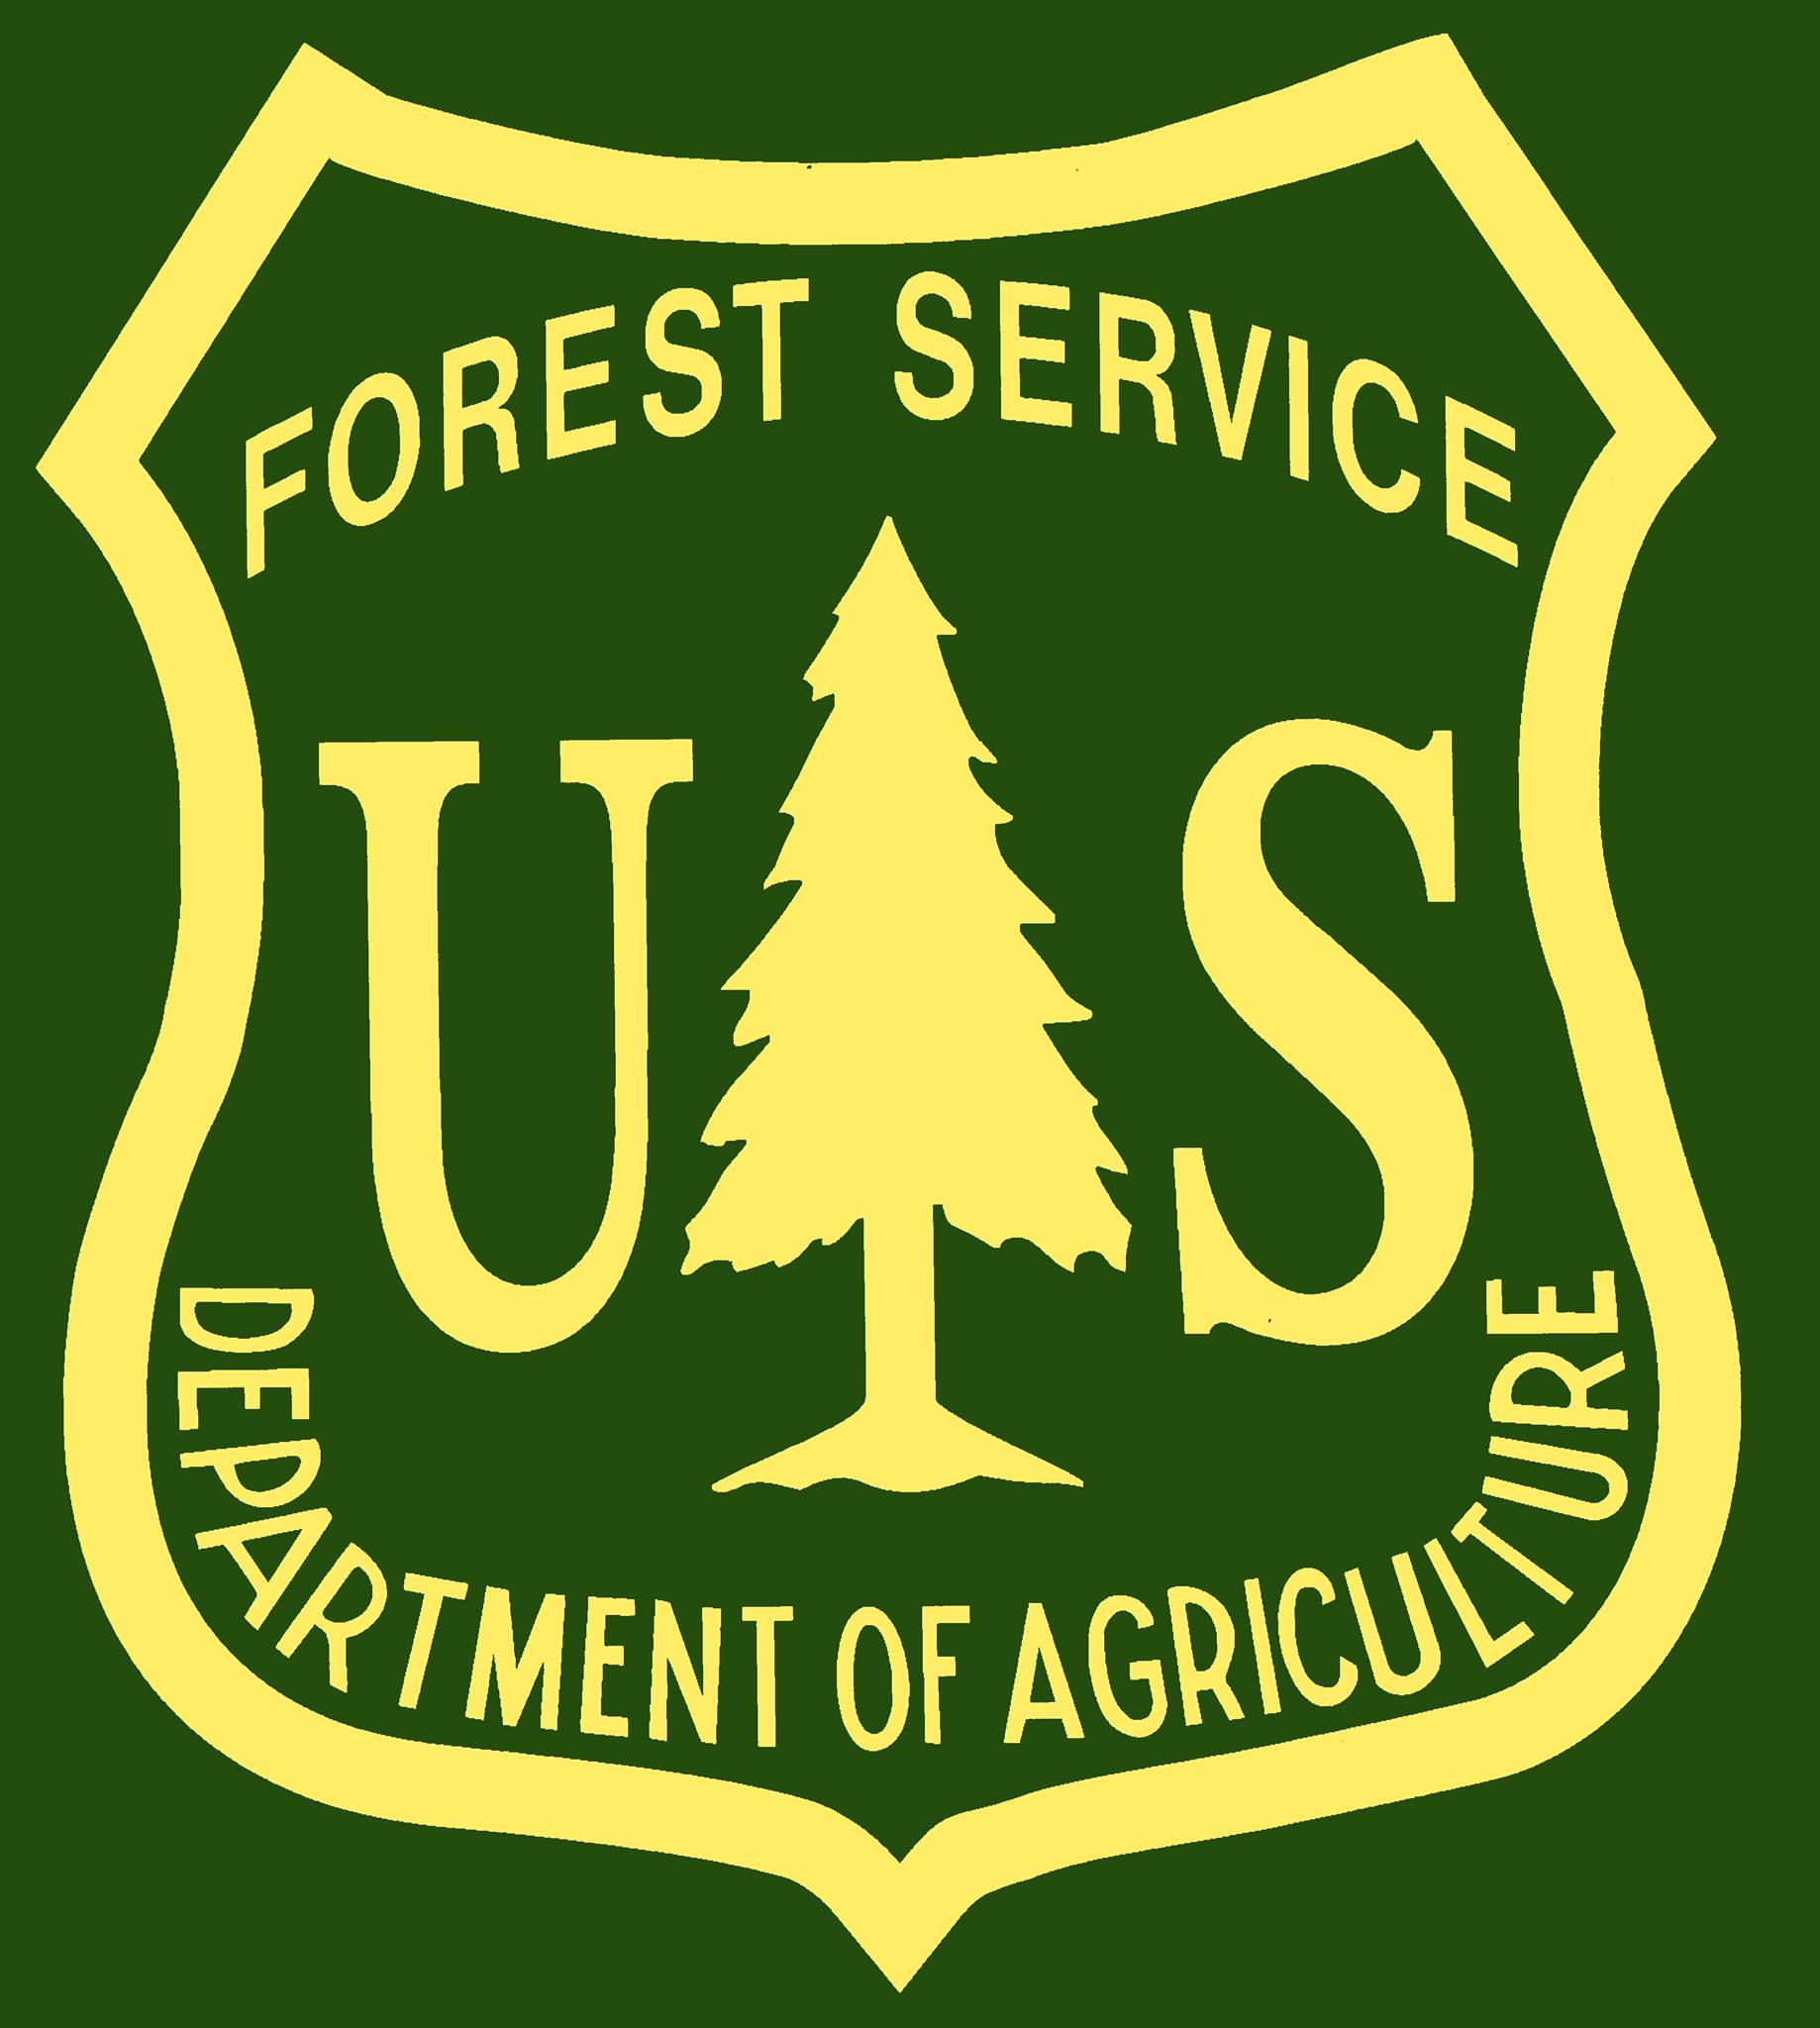 Work on a motorized trail near Dubois has been paused related to firefighting concerns